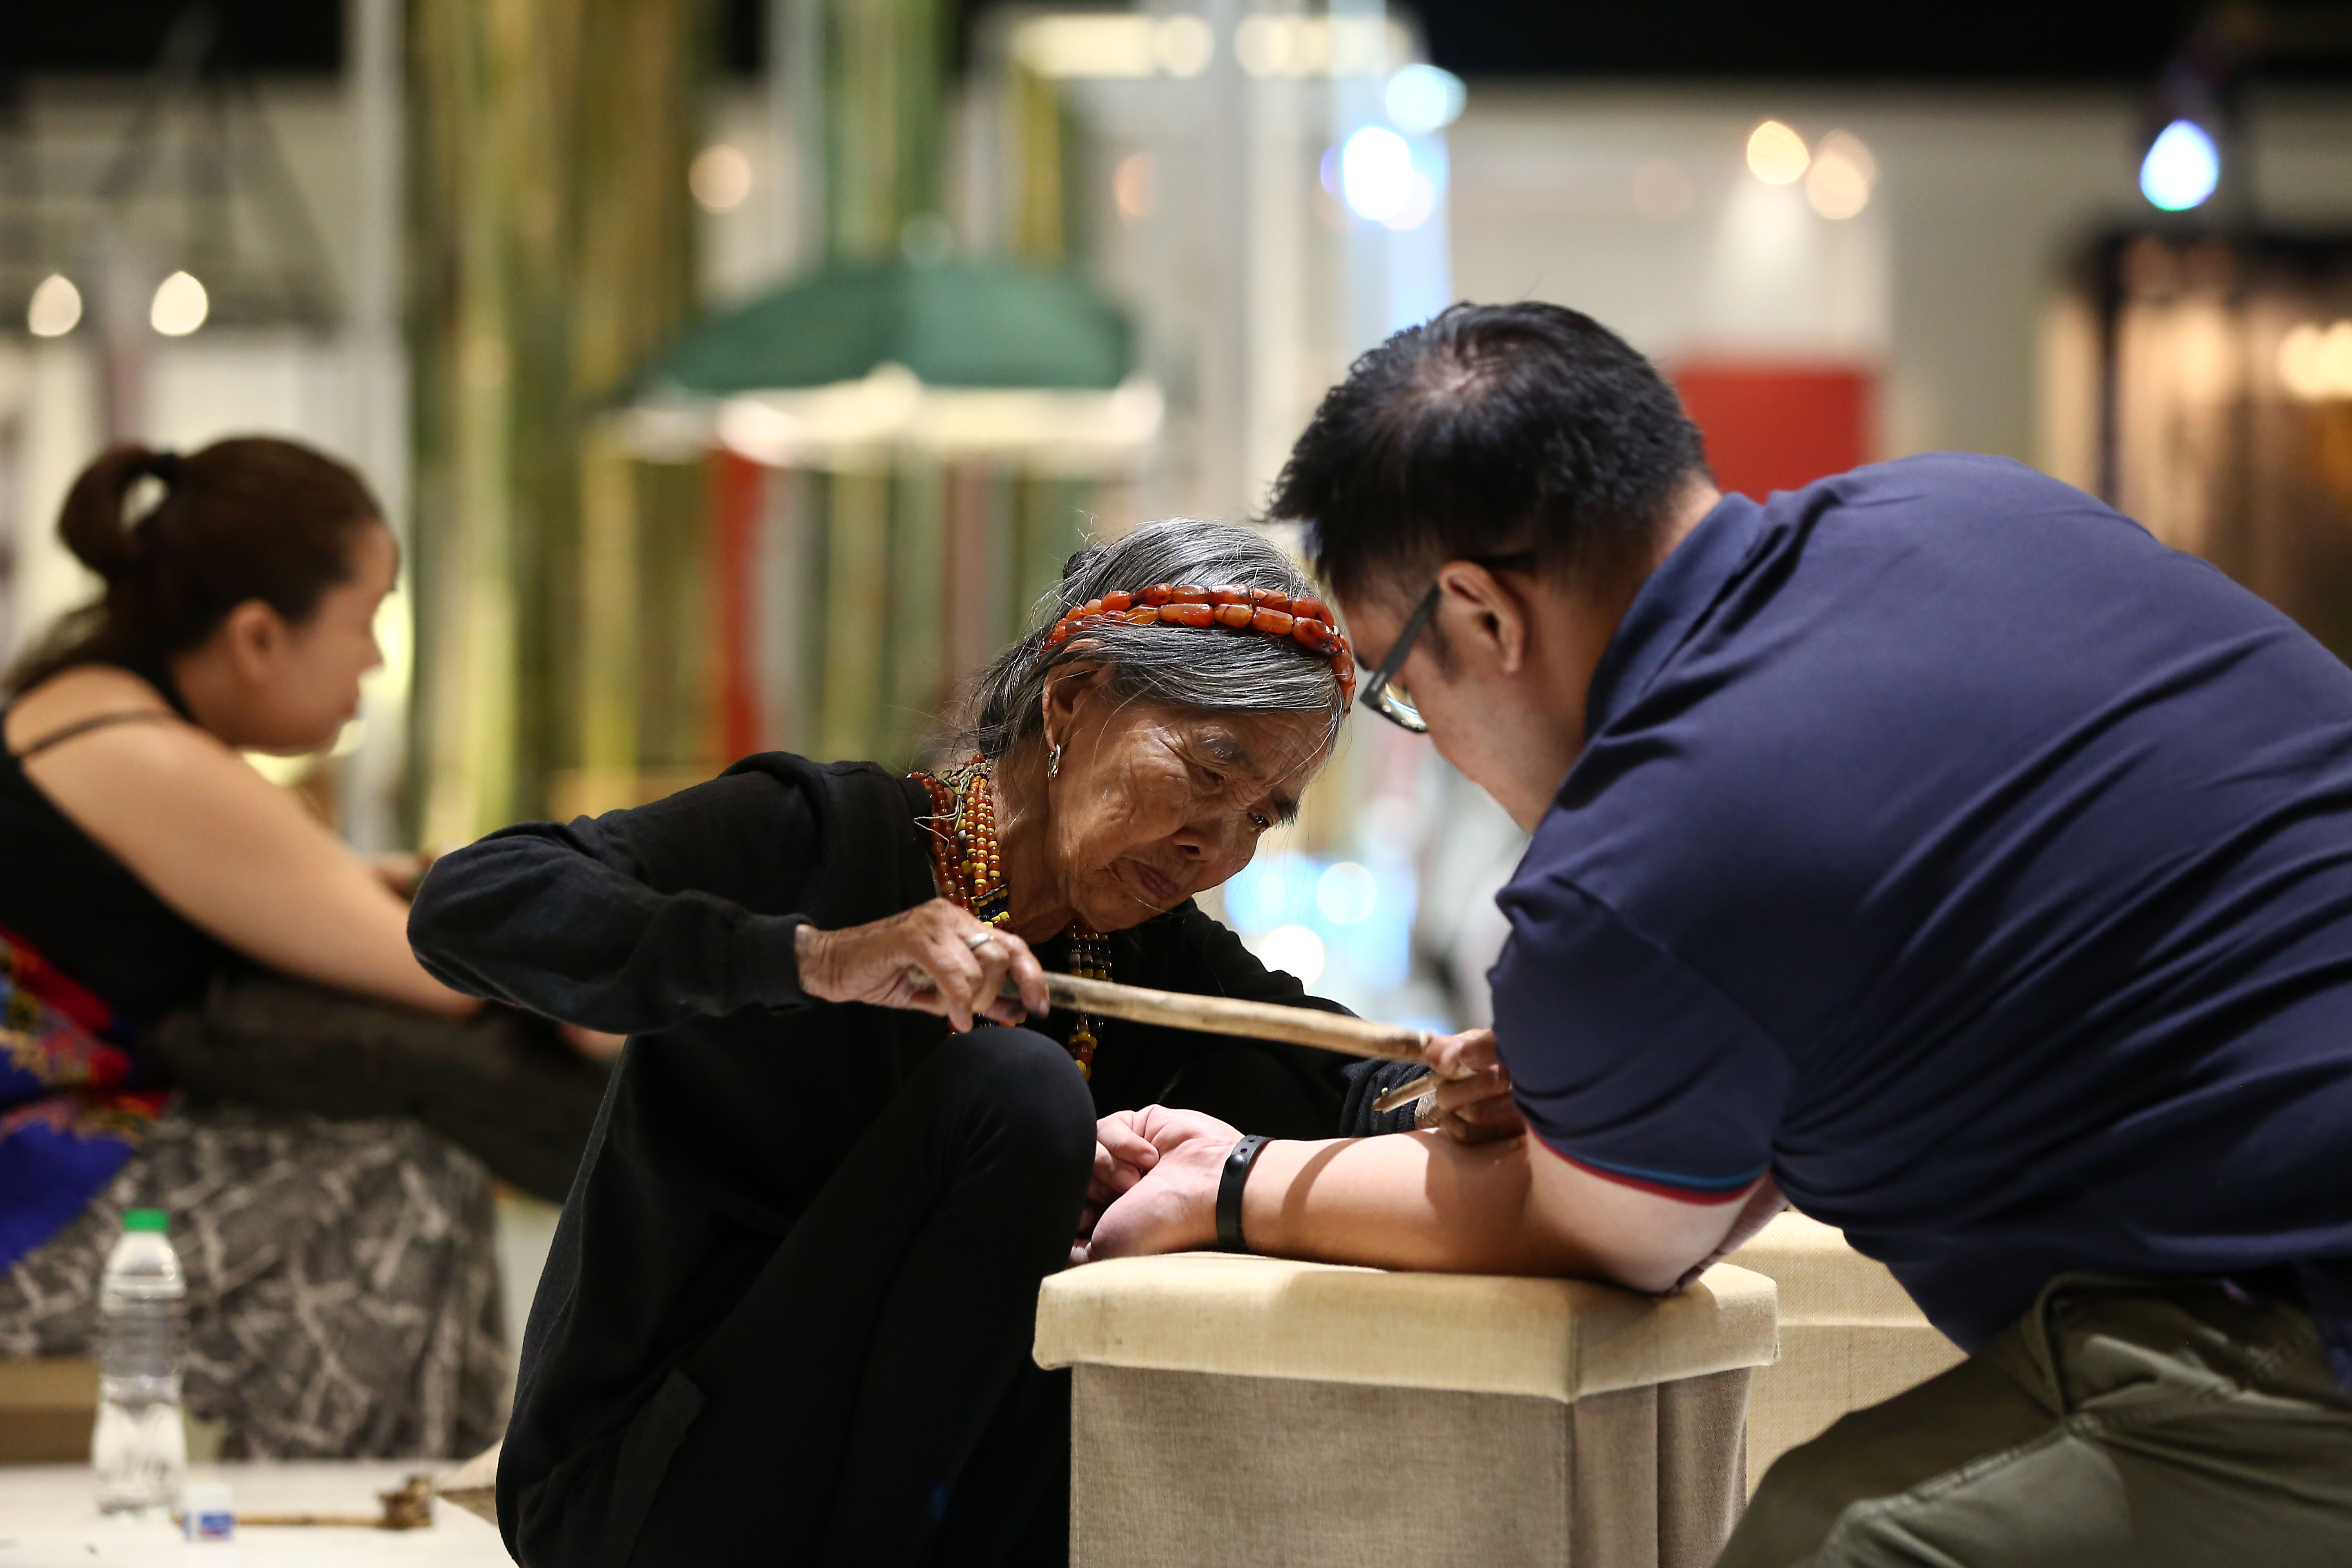 MANILA VISIT. Whang Od conducts live tattoo session at the trade event held at the World Trade Center, Pasay, Manila. Photo by Ben Nabong